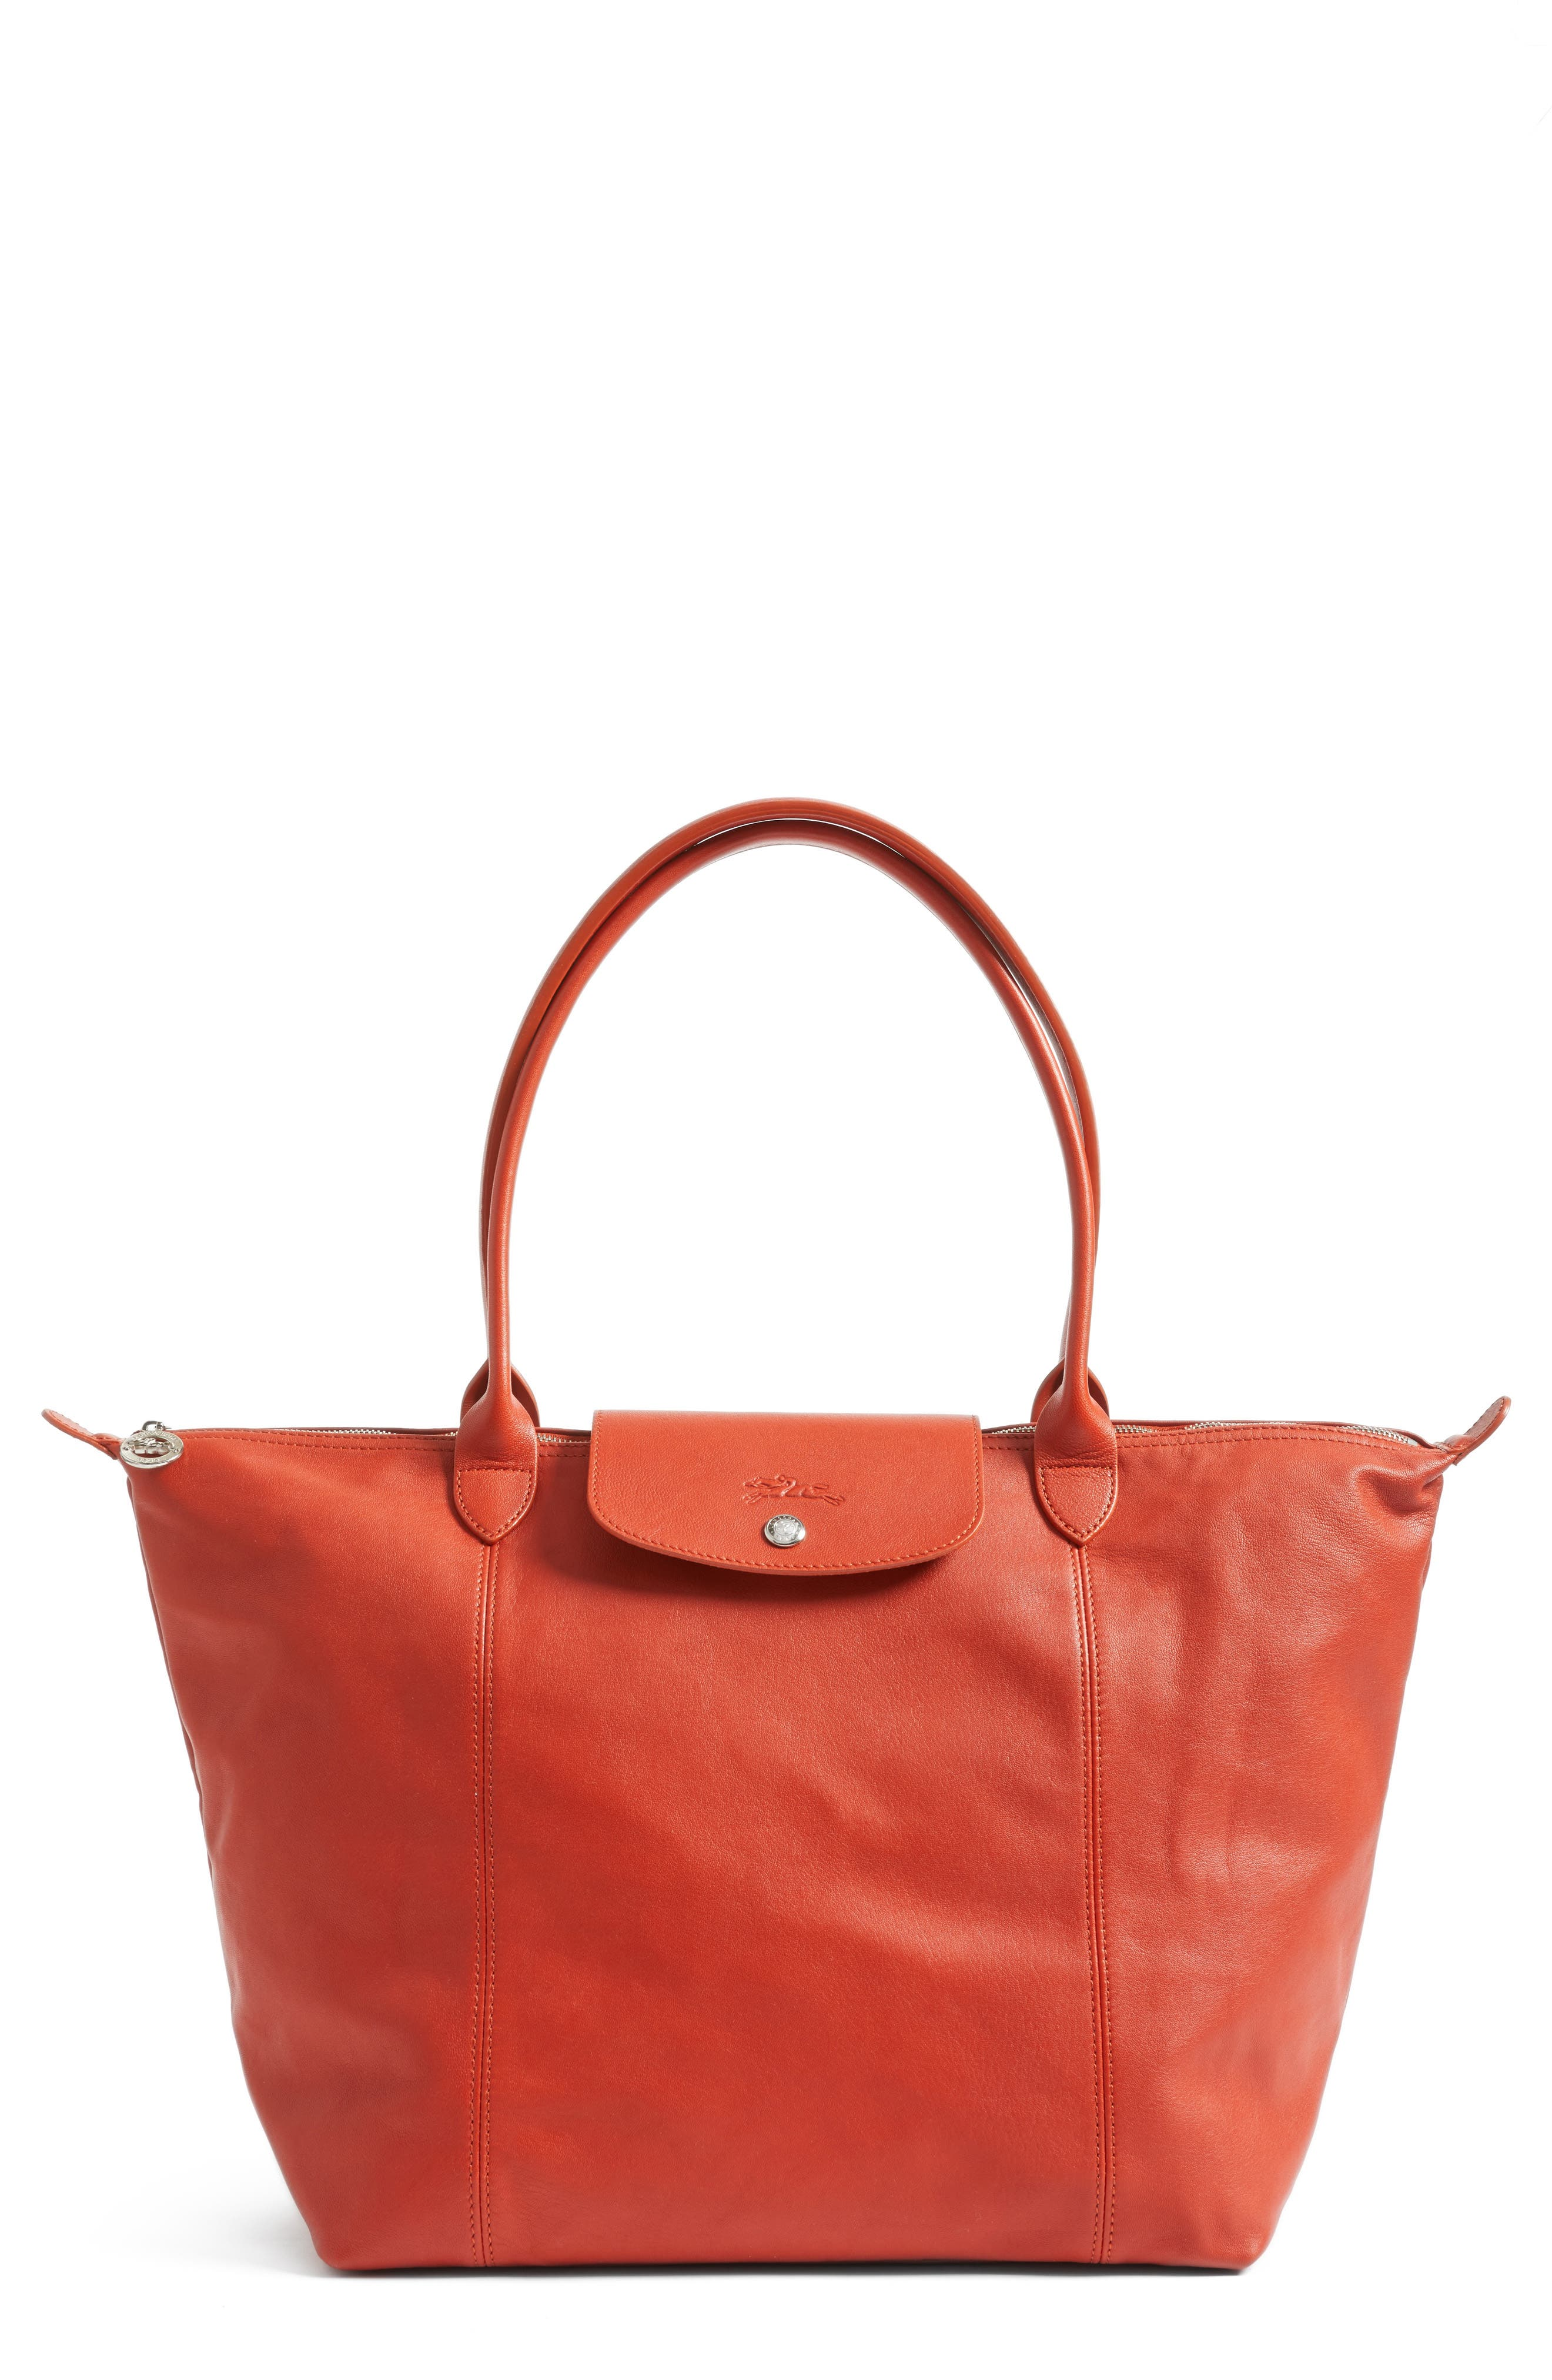 Alternate Image 1 Selected - Longchamp 'Le Pliage Cuir' Leather Tote